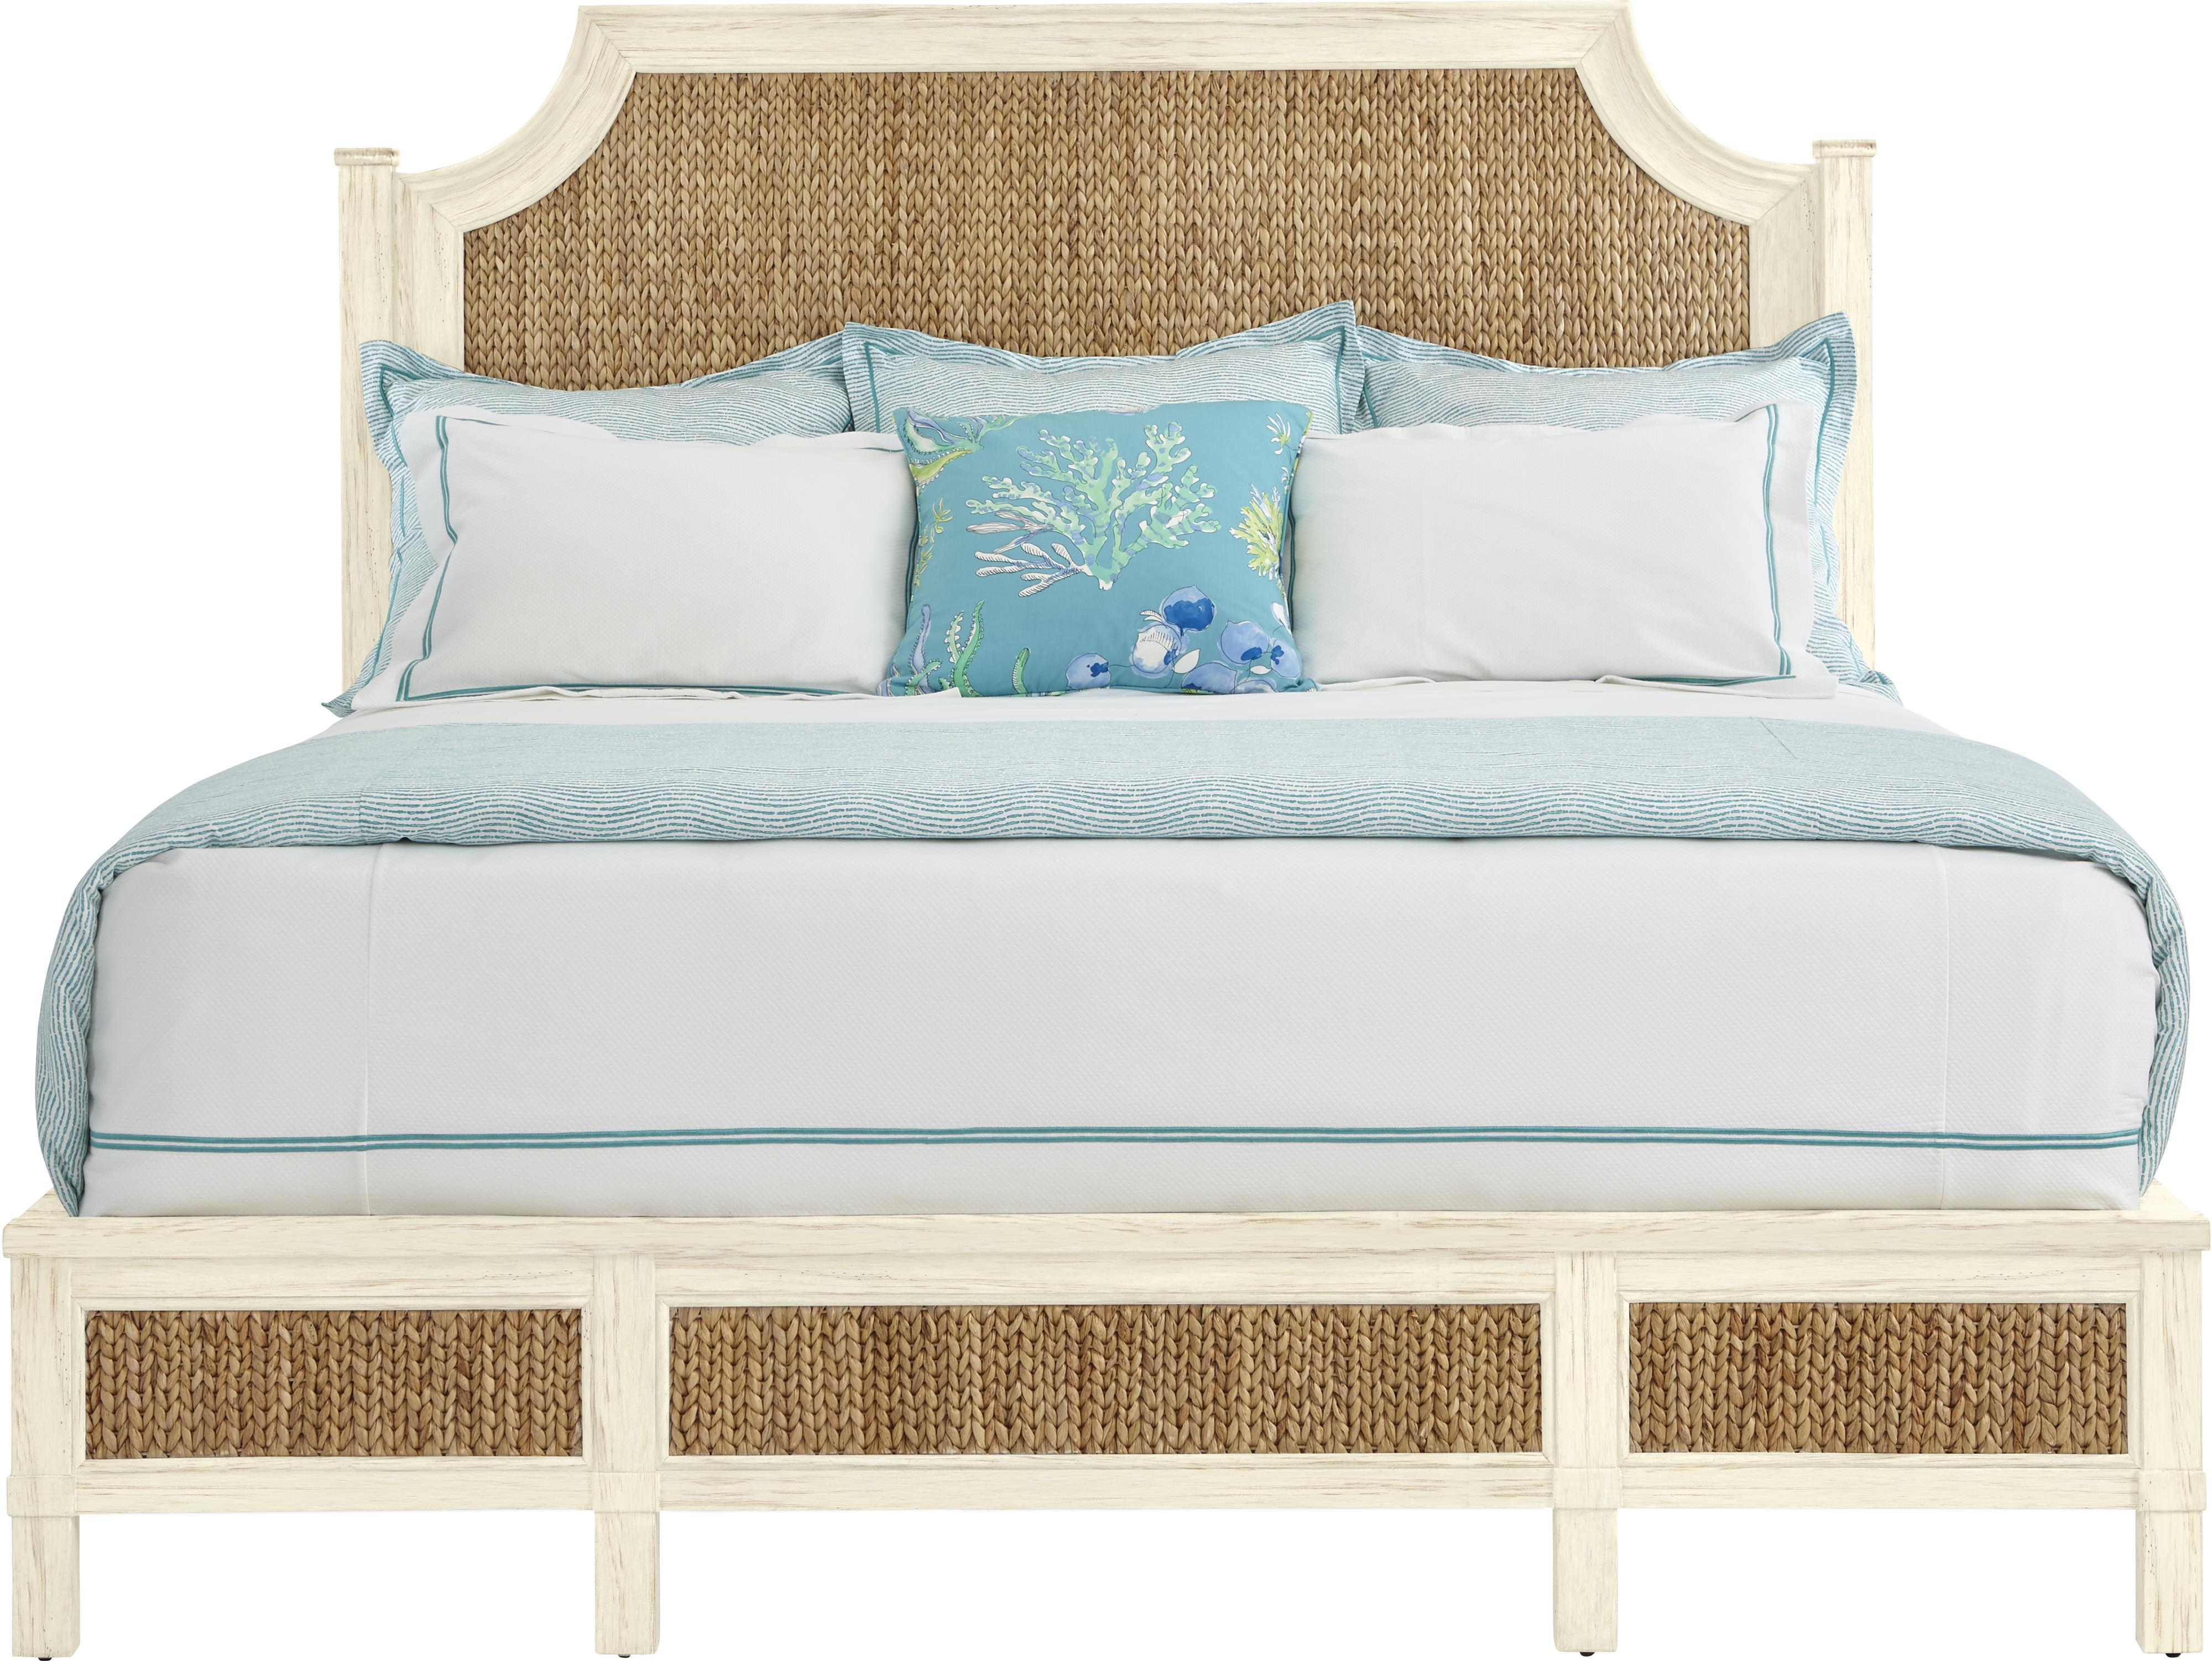 Stanley Furniture Coastal Living Resort King Water Meadow Woven Bed - Item Number: 062-A3-46